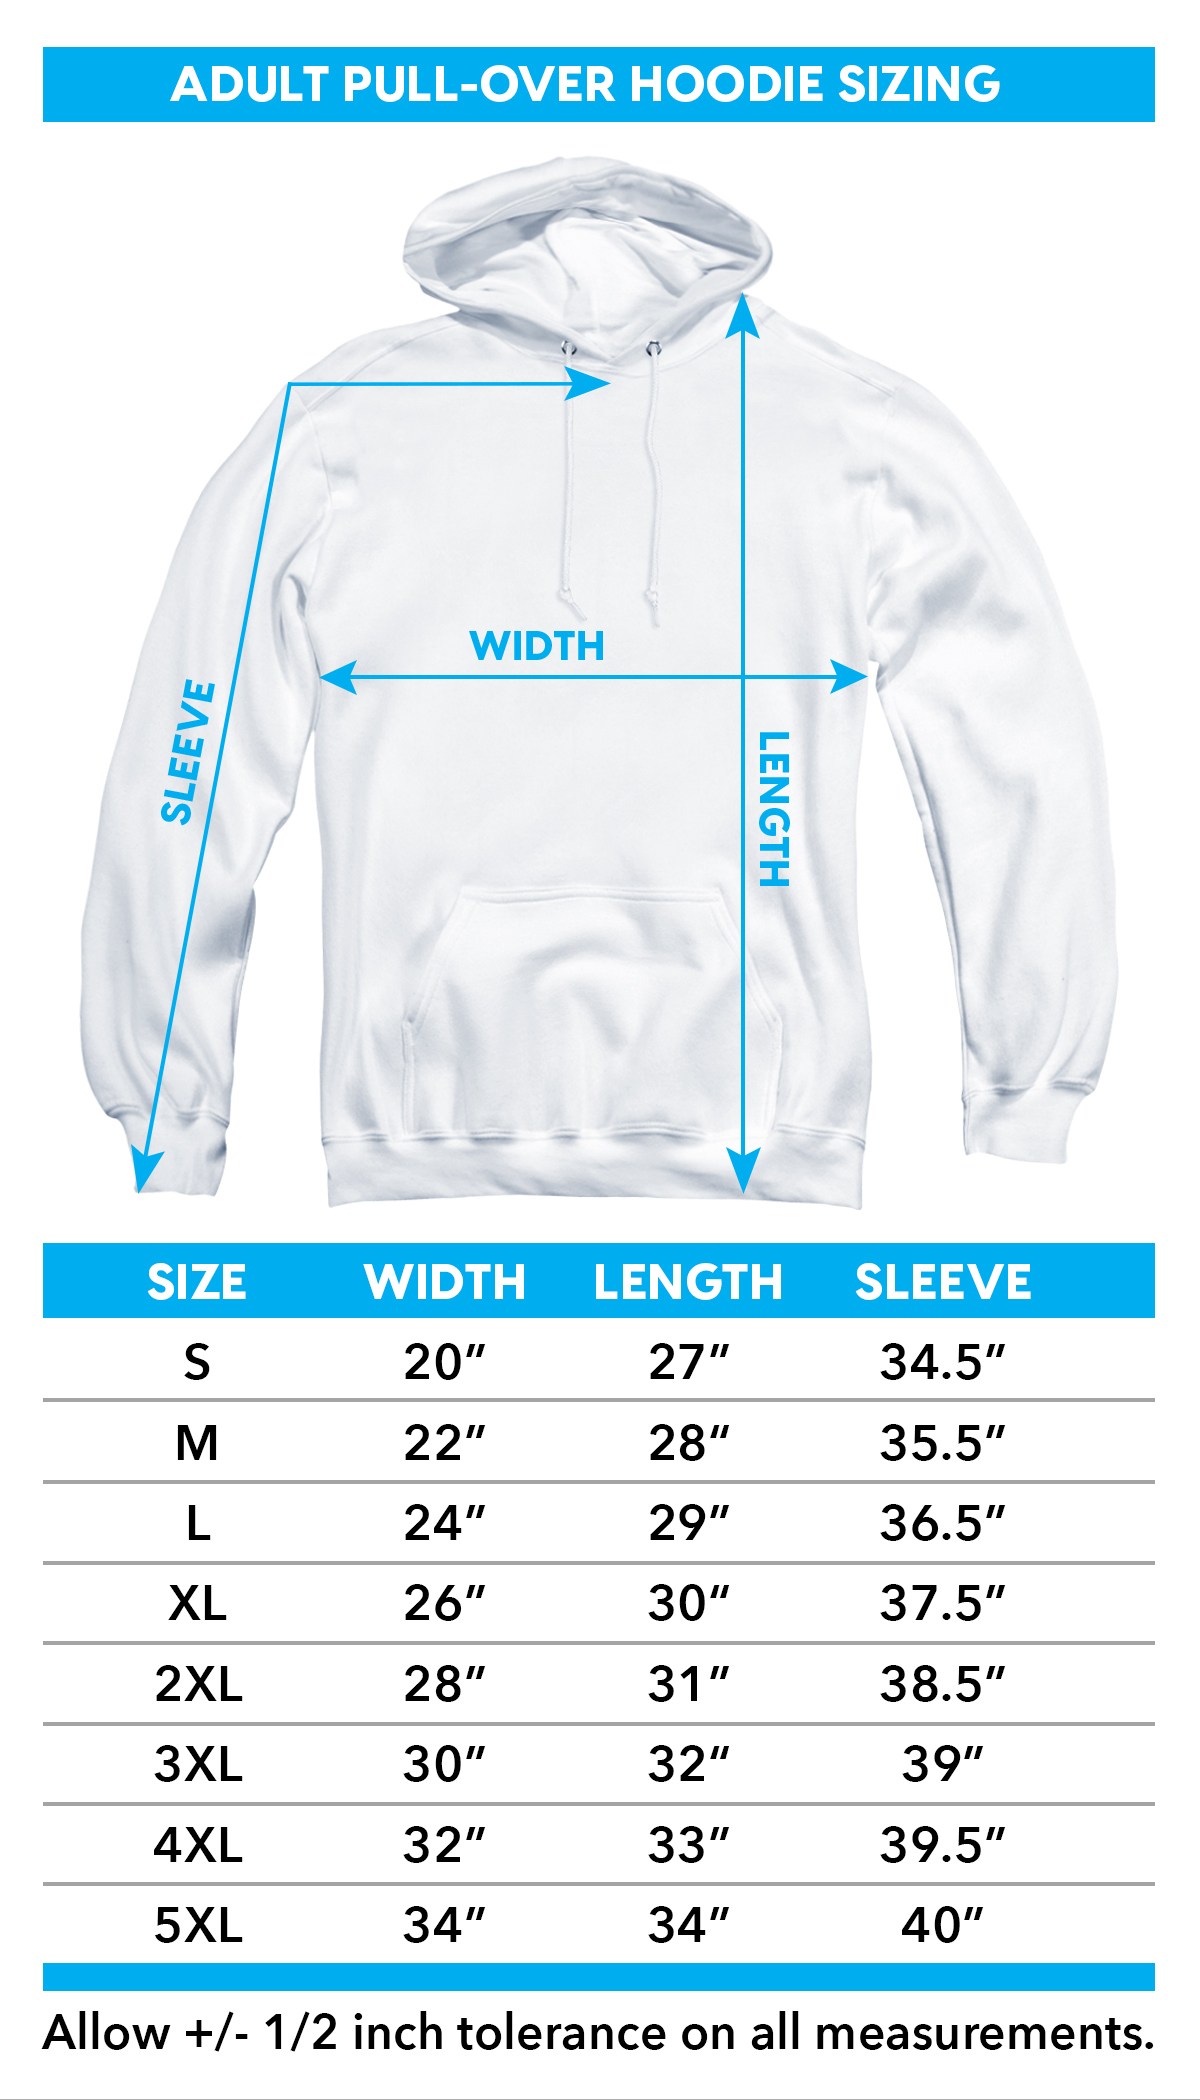 Sizing chart for Stevie Ray Vaughan Hoodie - SRV TRV-SRV105-AFTH